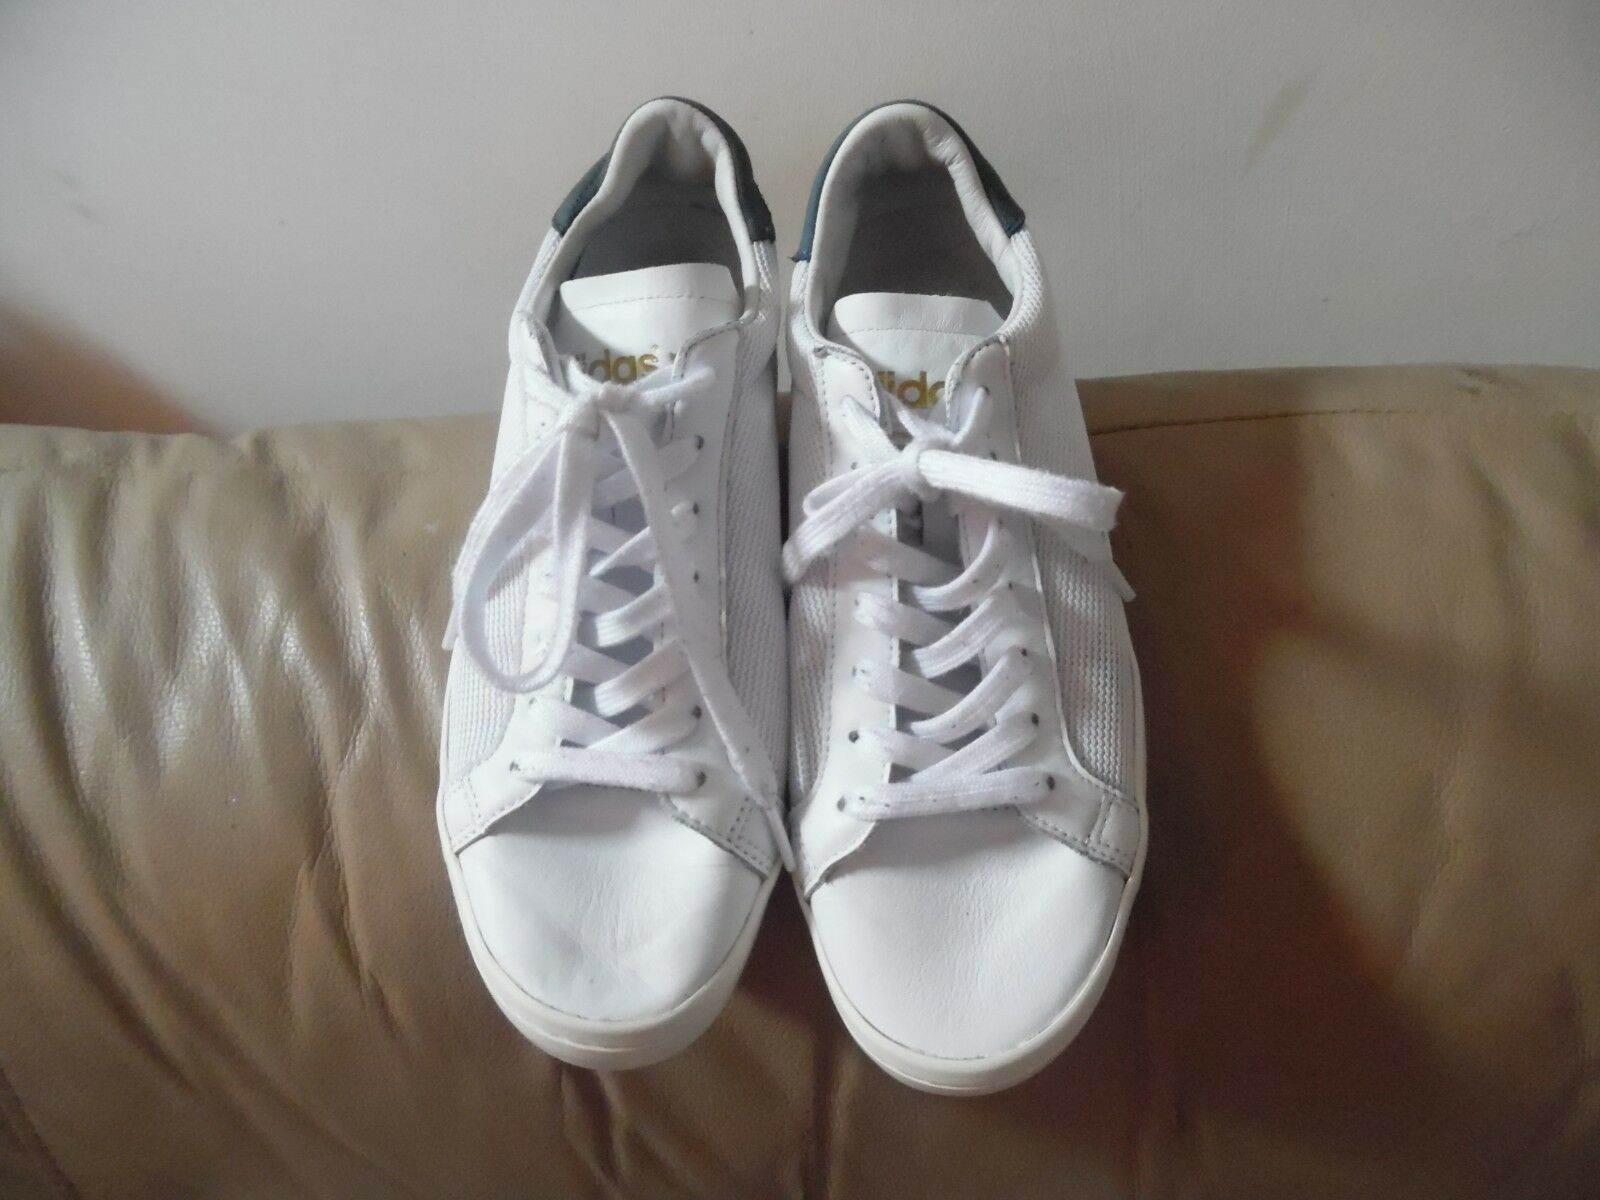 ADIDAS WHITE ART TRAINERS SIZE 9